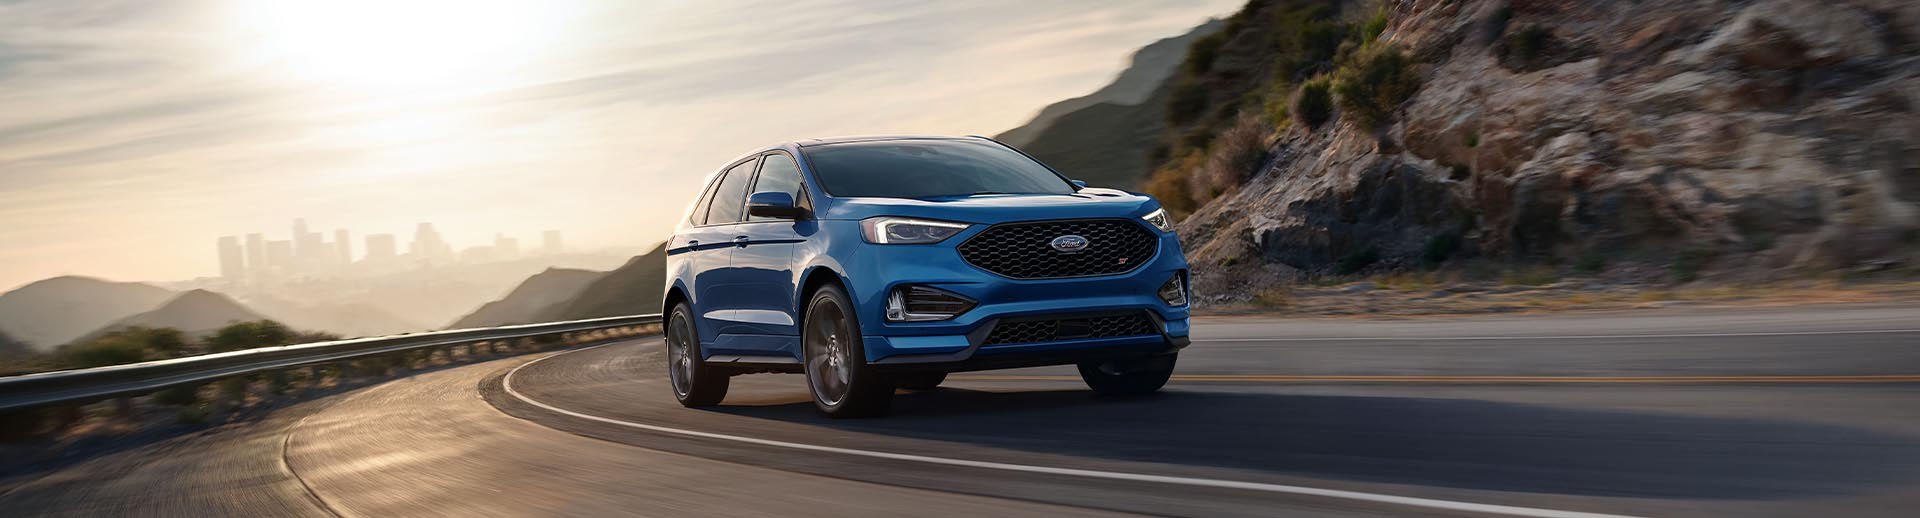 2020 Ford Edge Lifestyle Photo